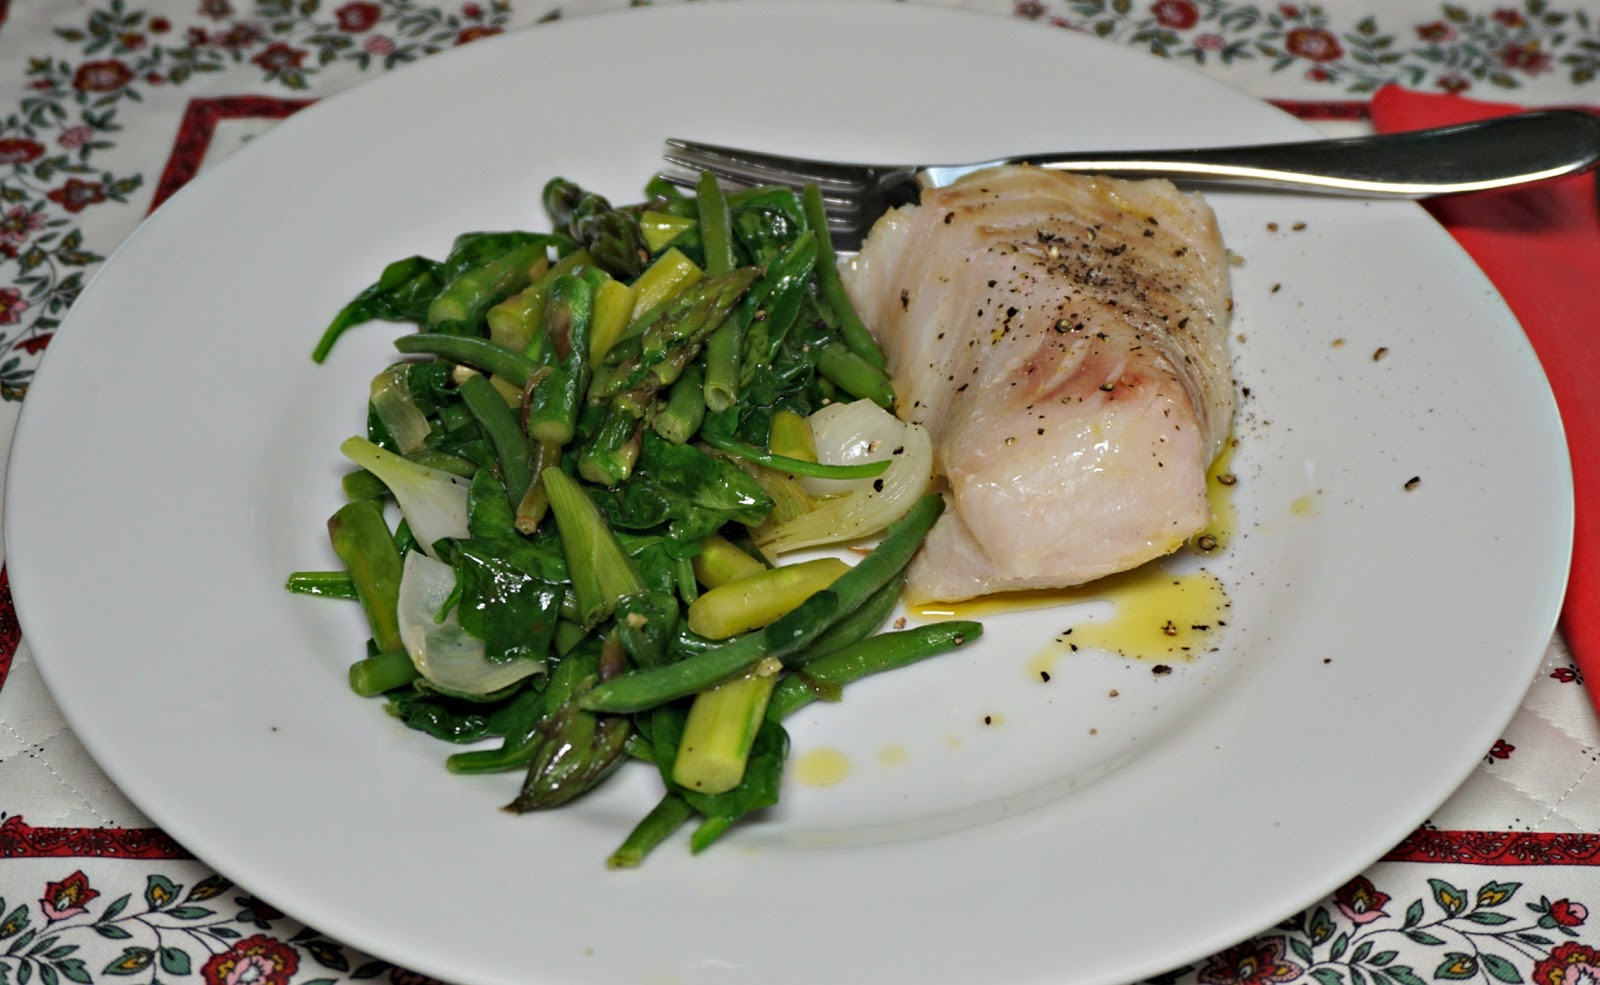 Mixed greens with cod